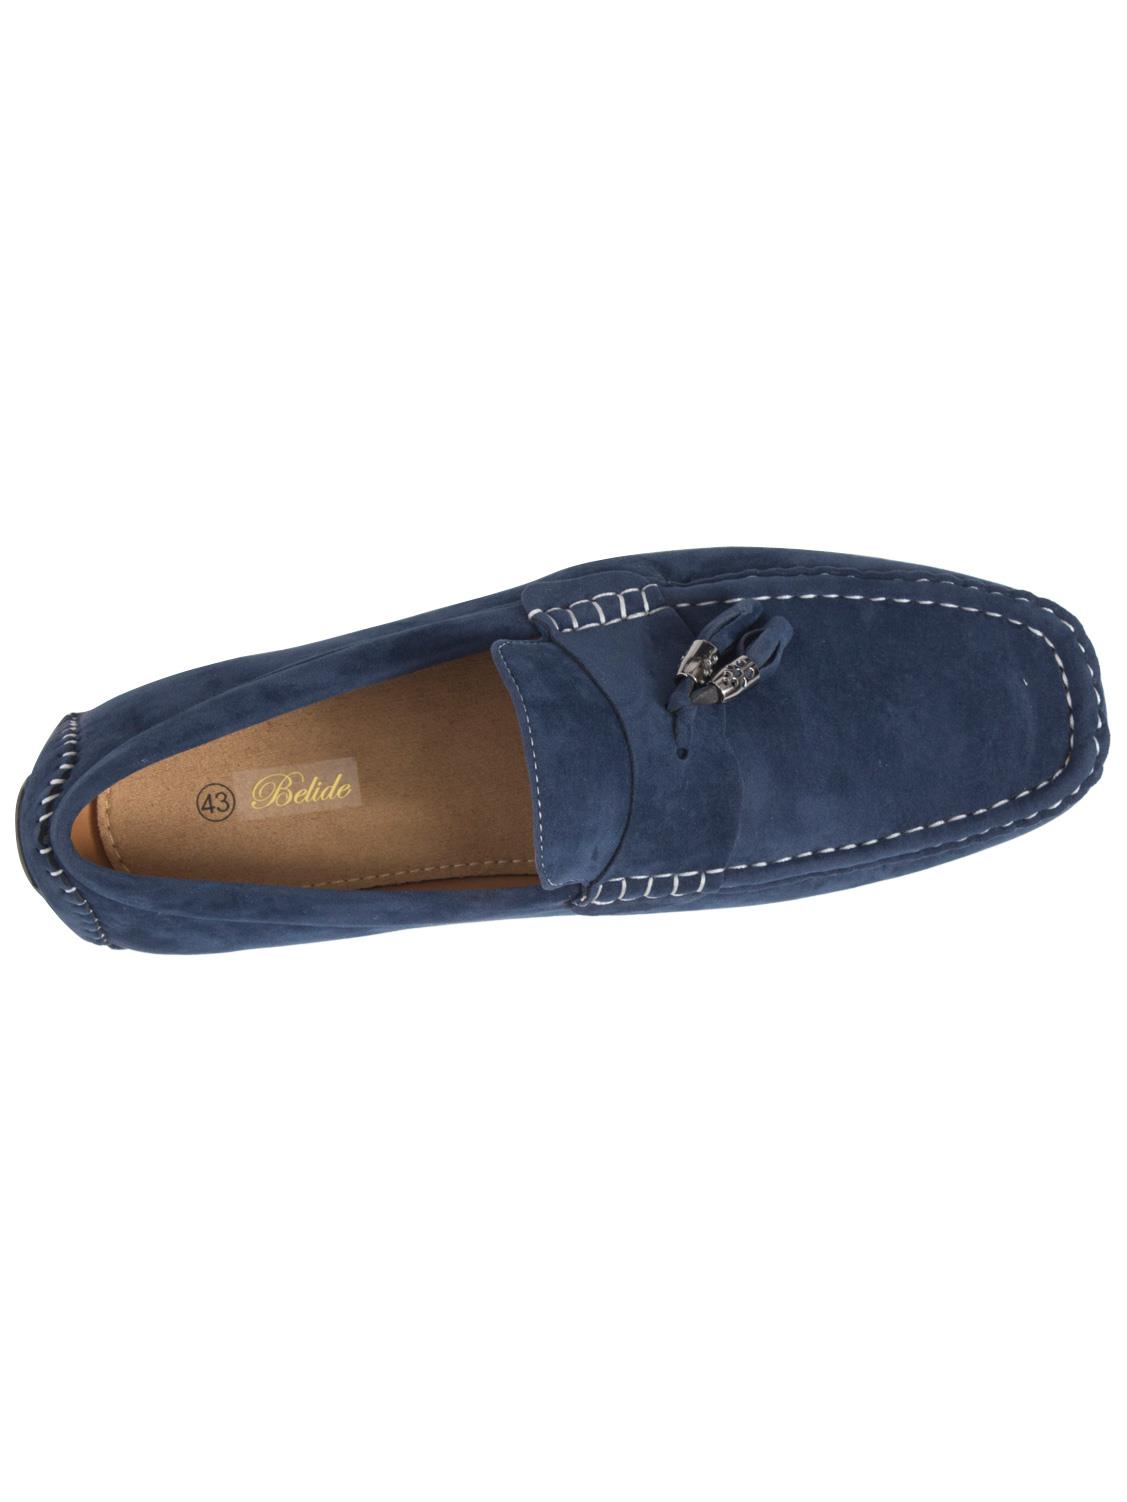 Mens-Slip-Ons-Shoes-Boat-Deck-Driving-Smart-Buckle-Moccasins-Suede-Look-Loafers thumbnail 66